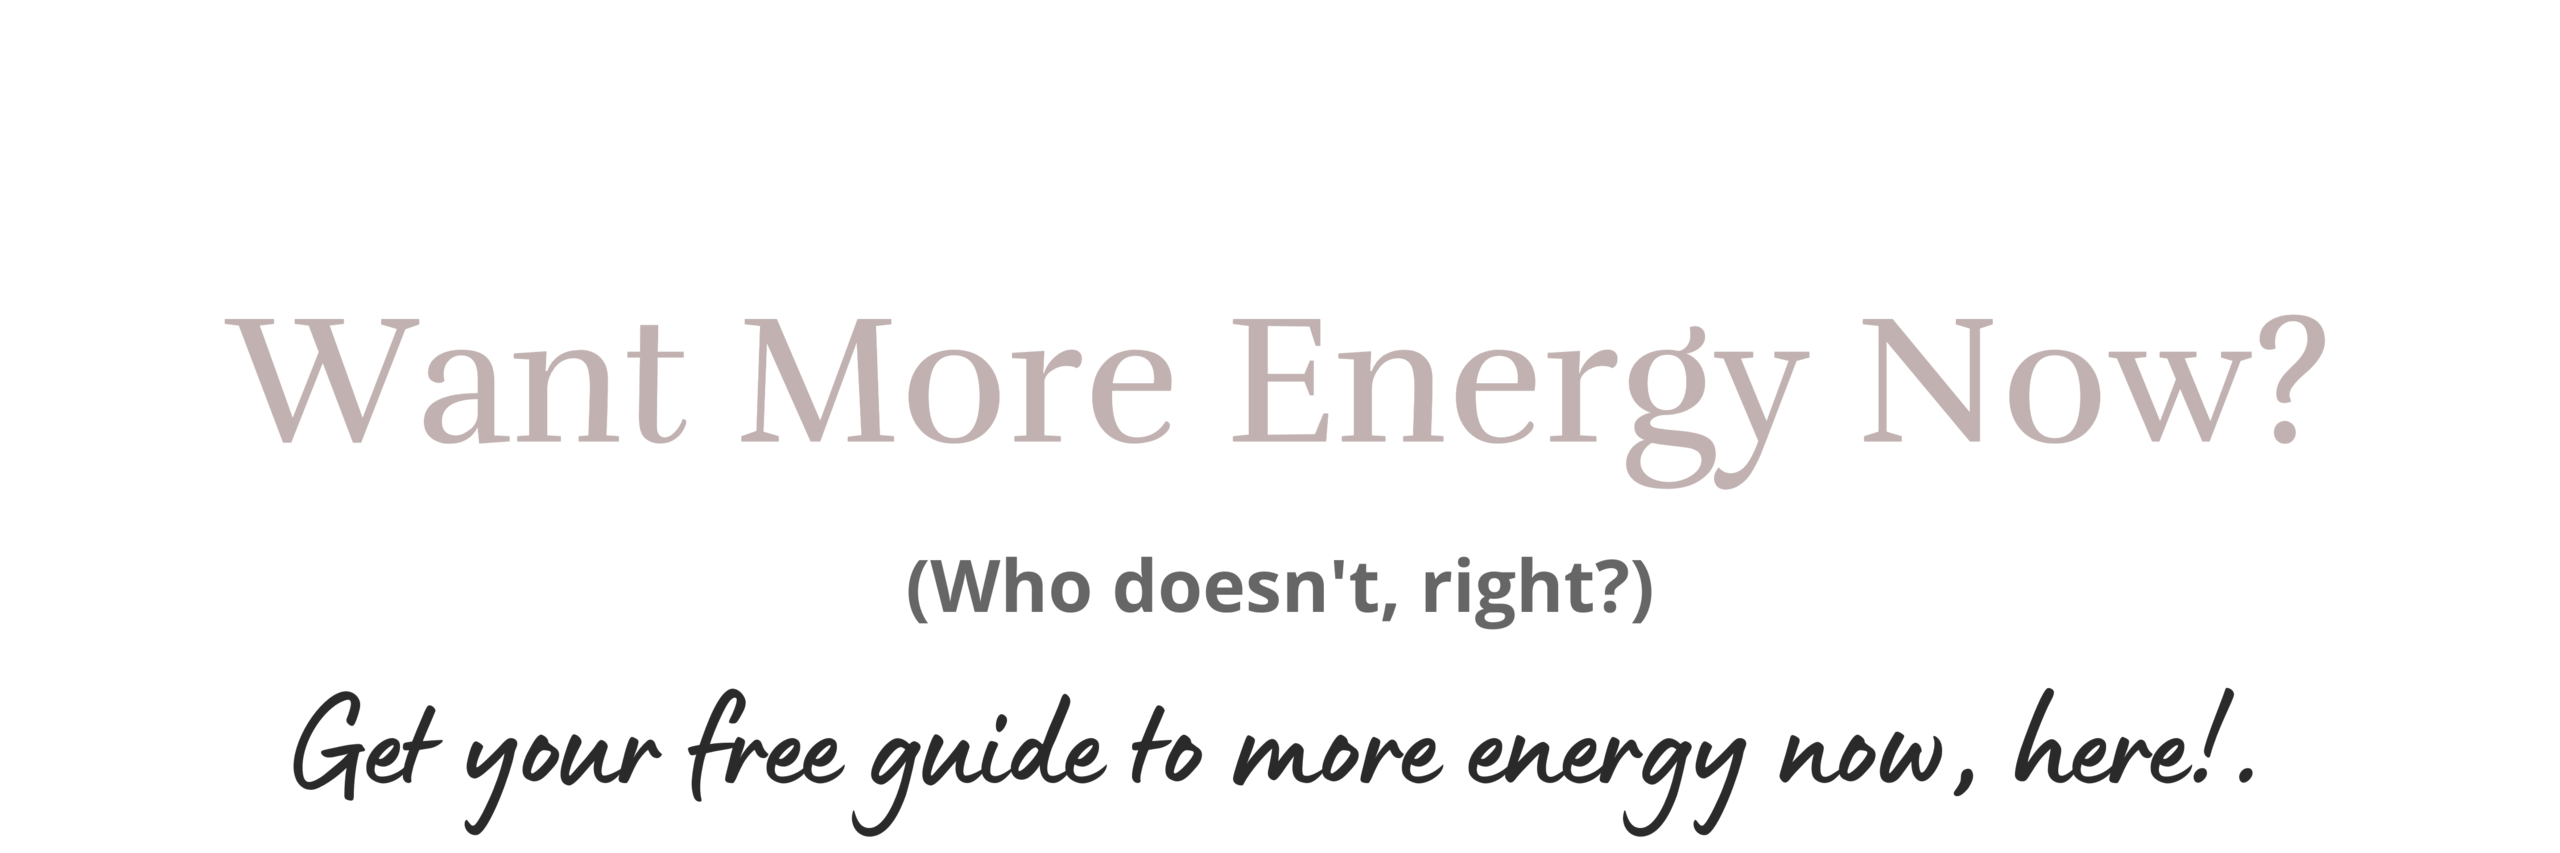 Get more energy with Kristen Blake Wellness.